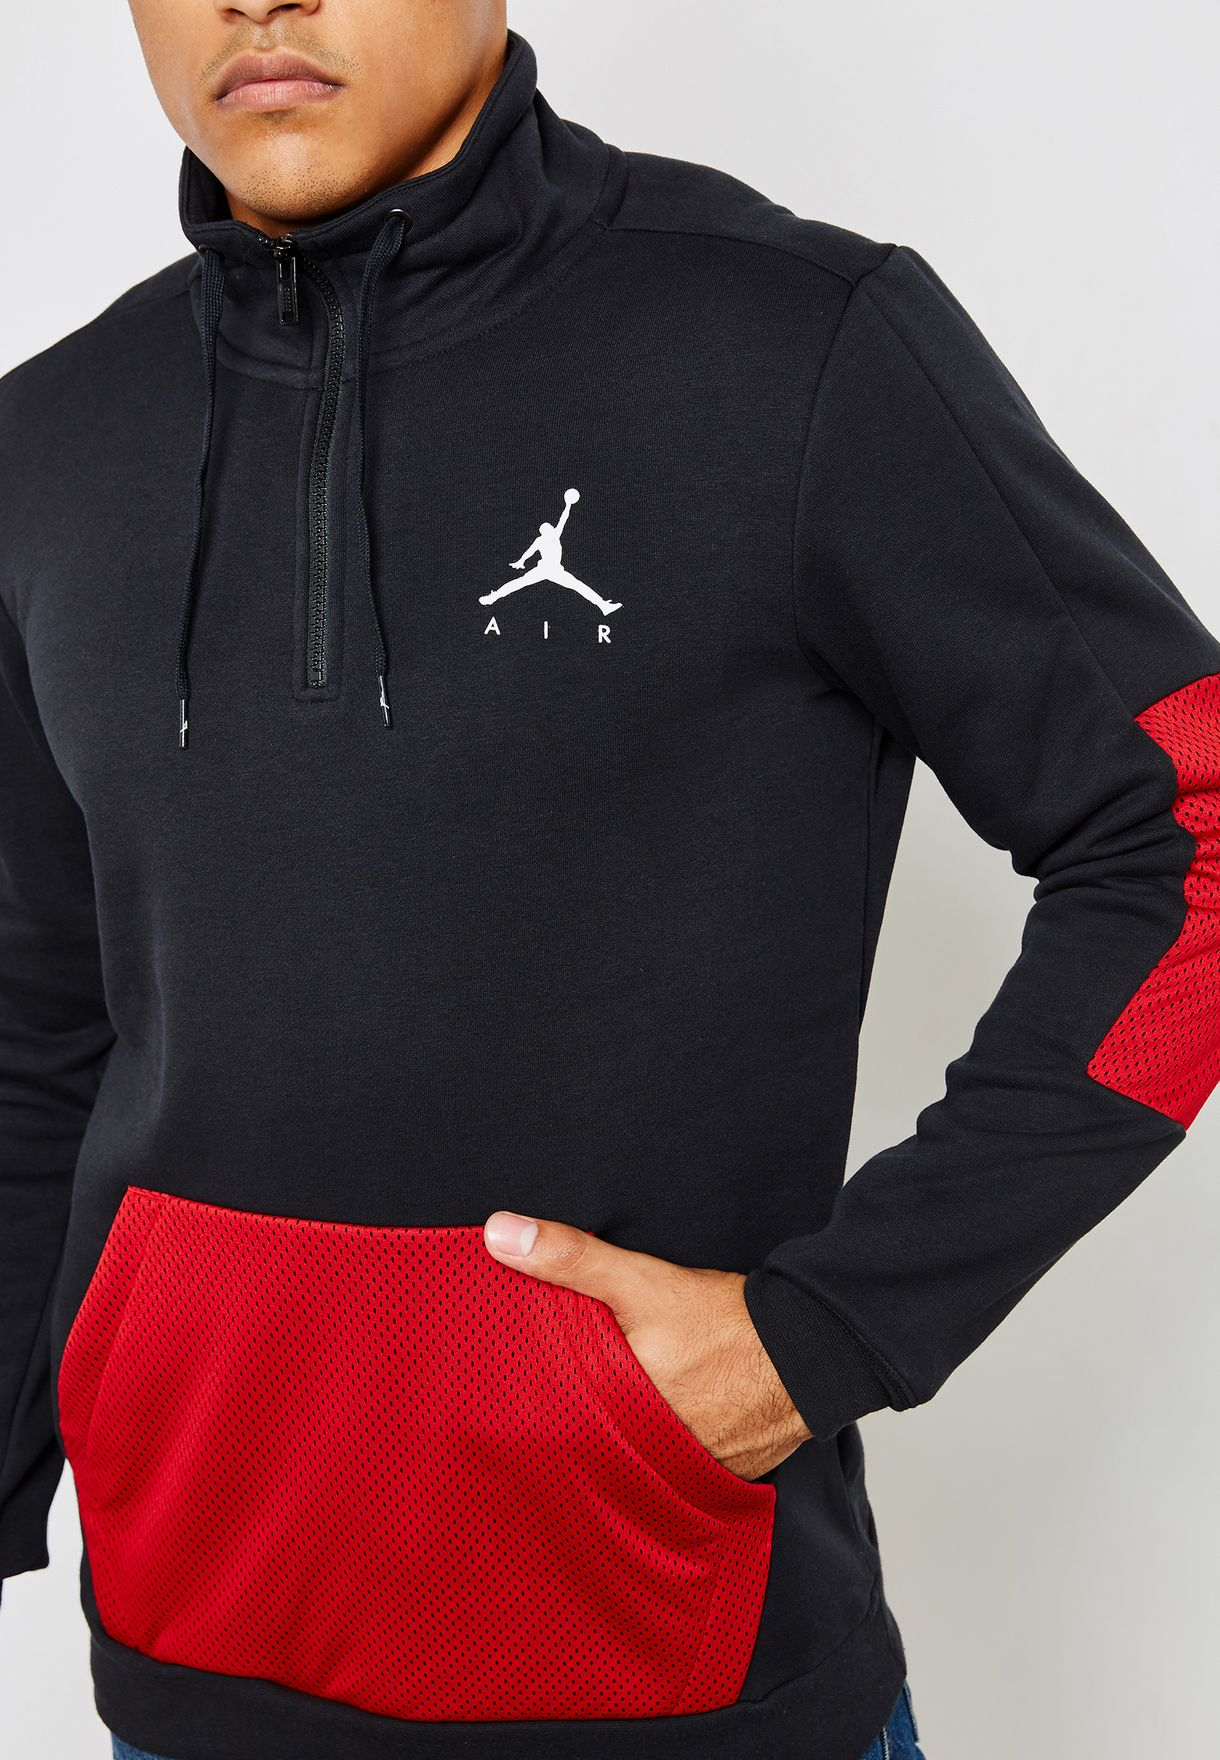 899a5a0fad3c Shop Nike black Jordan Jumpman Hybrid Fleece Sweatshirt AH6238-010 ...